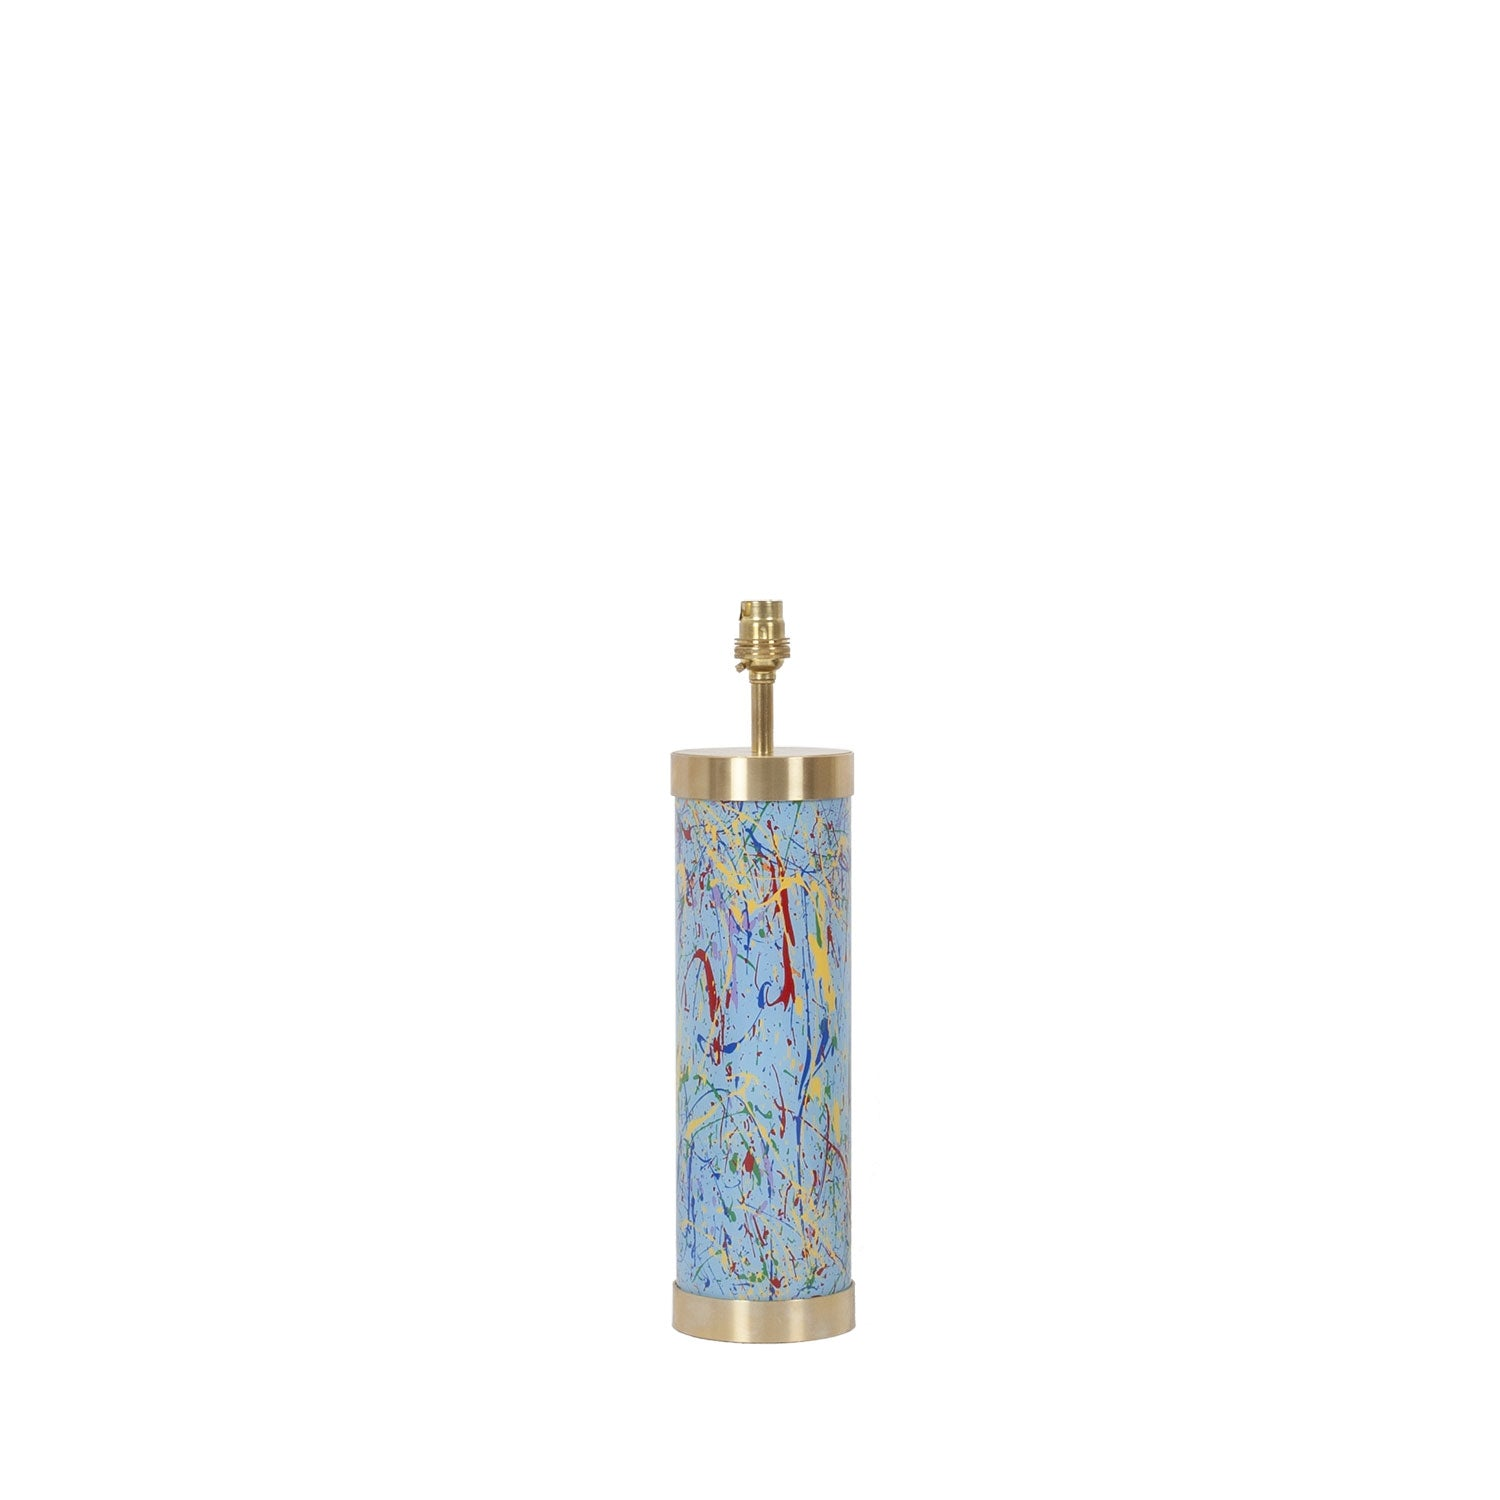 Glass & Brass Lamp - End of Day Confetti - Blue